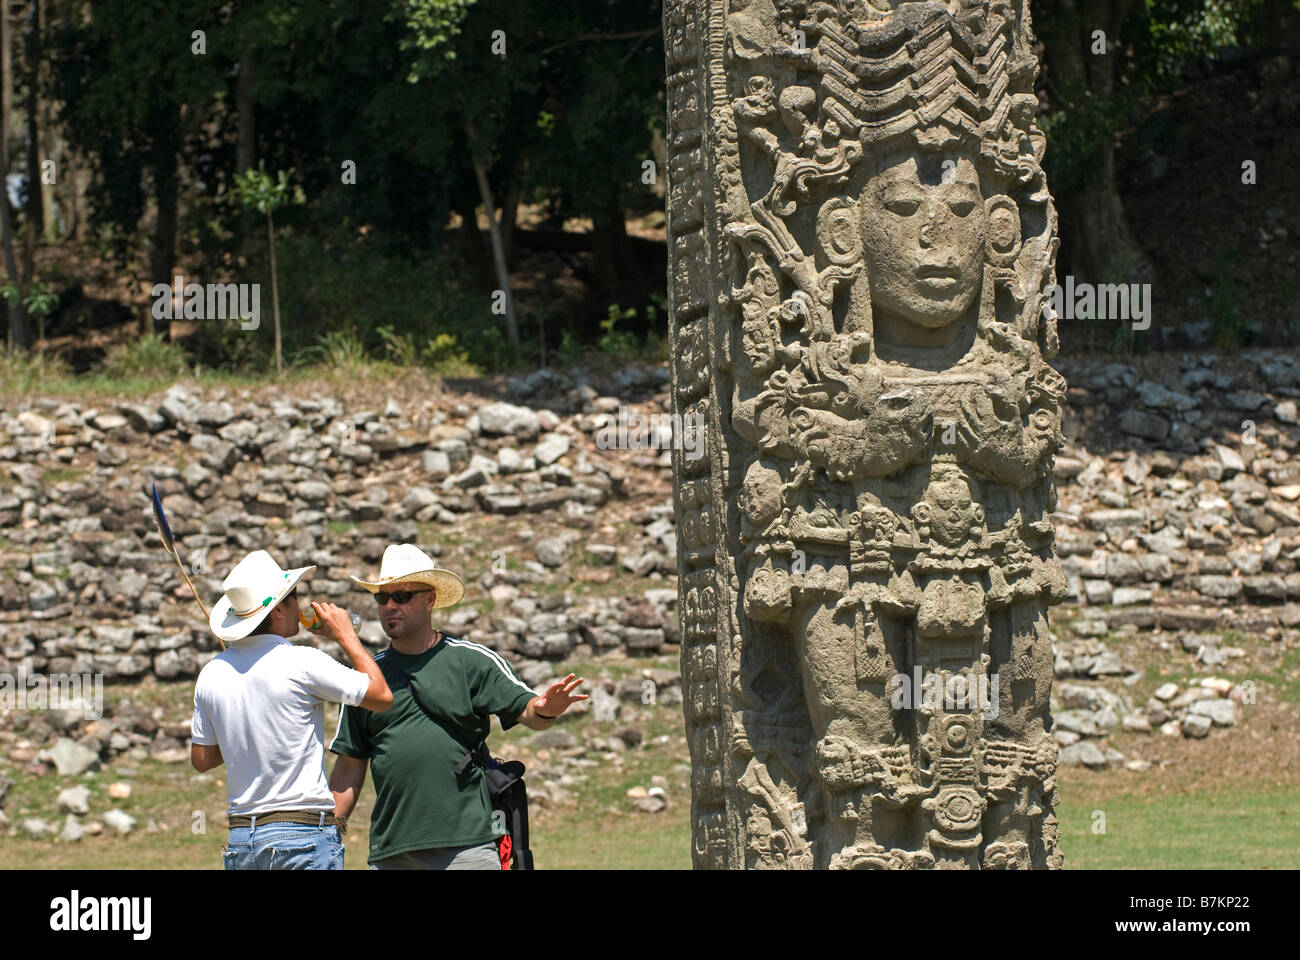 Honduras, Copan. Maya Ruins of Copan, a UNESCO World Heritage Site, is the site of a major Maya kingdom of the Classic - Stock Image